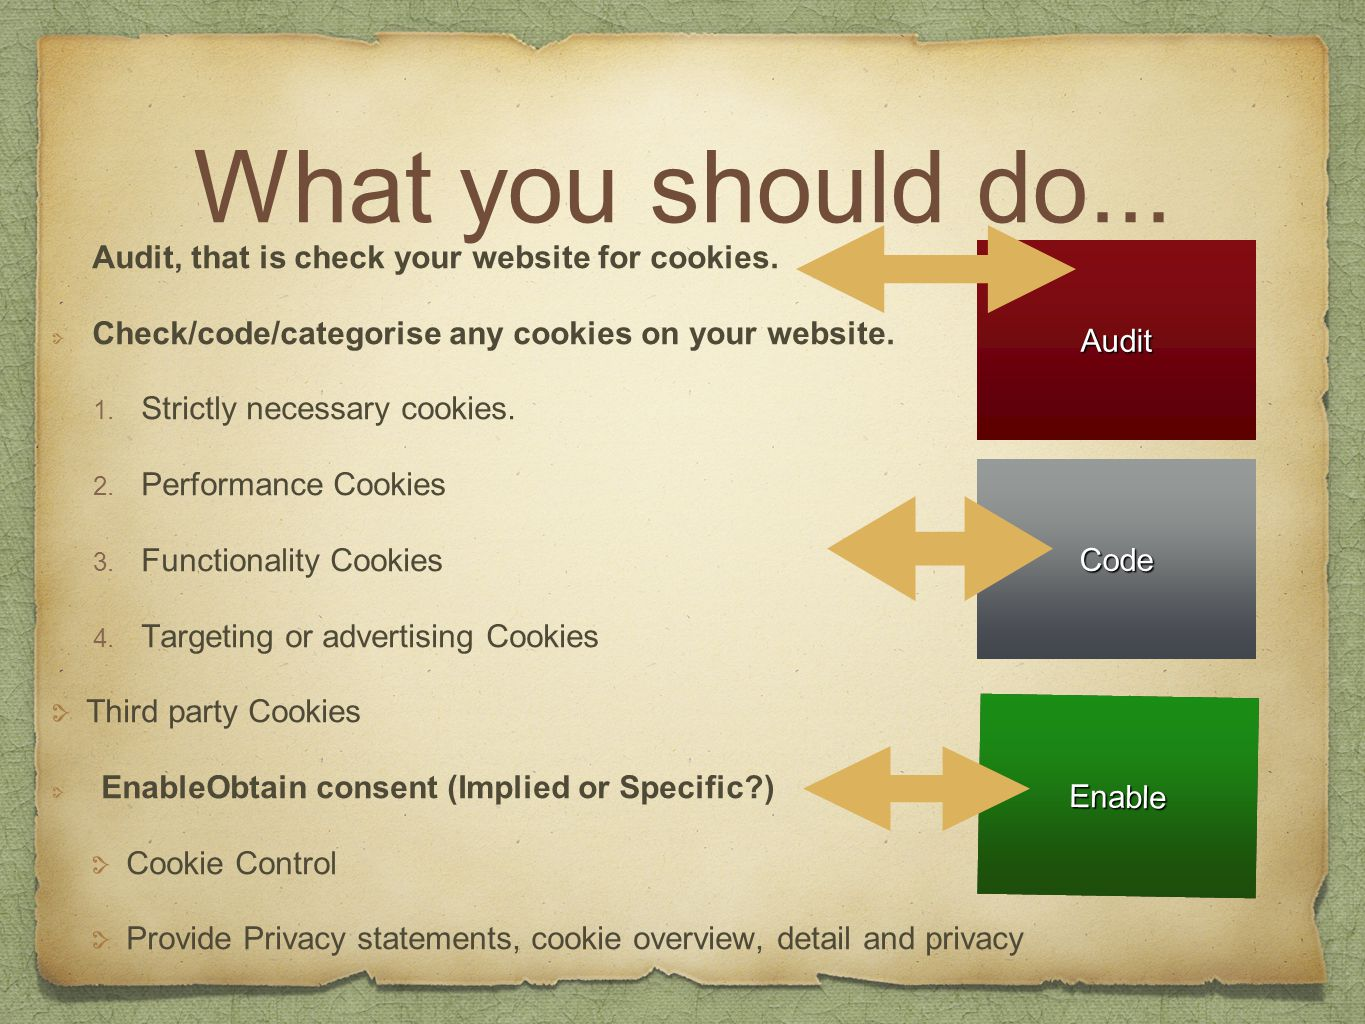 What you should do... Audit, that is check your website for cookies.